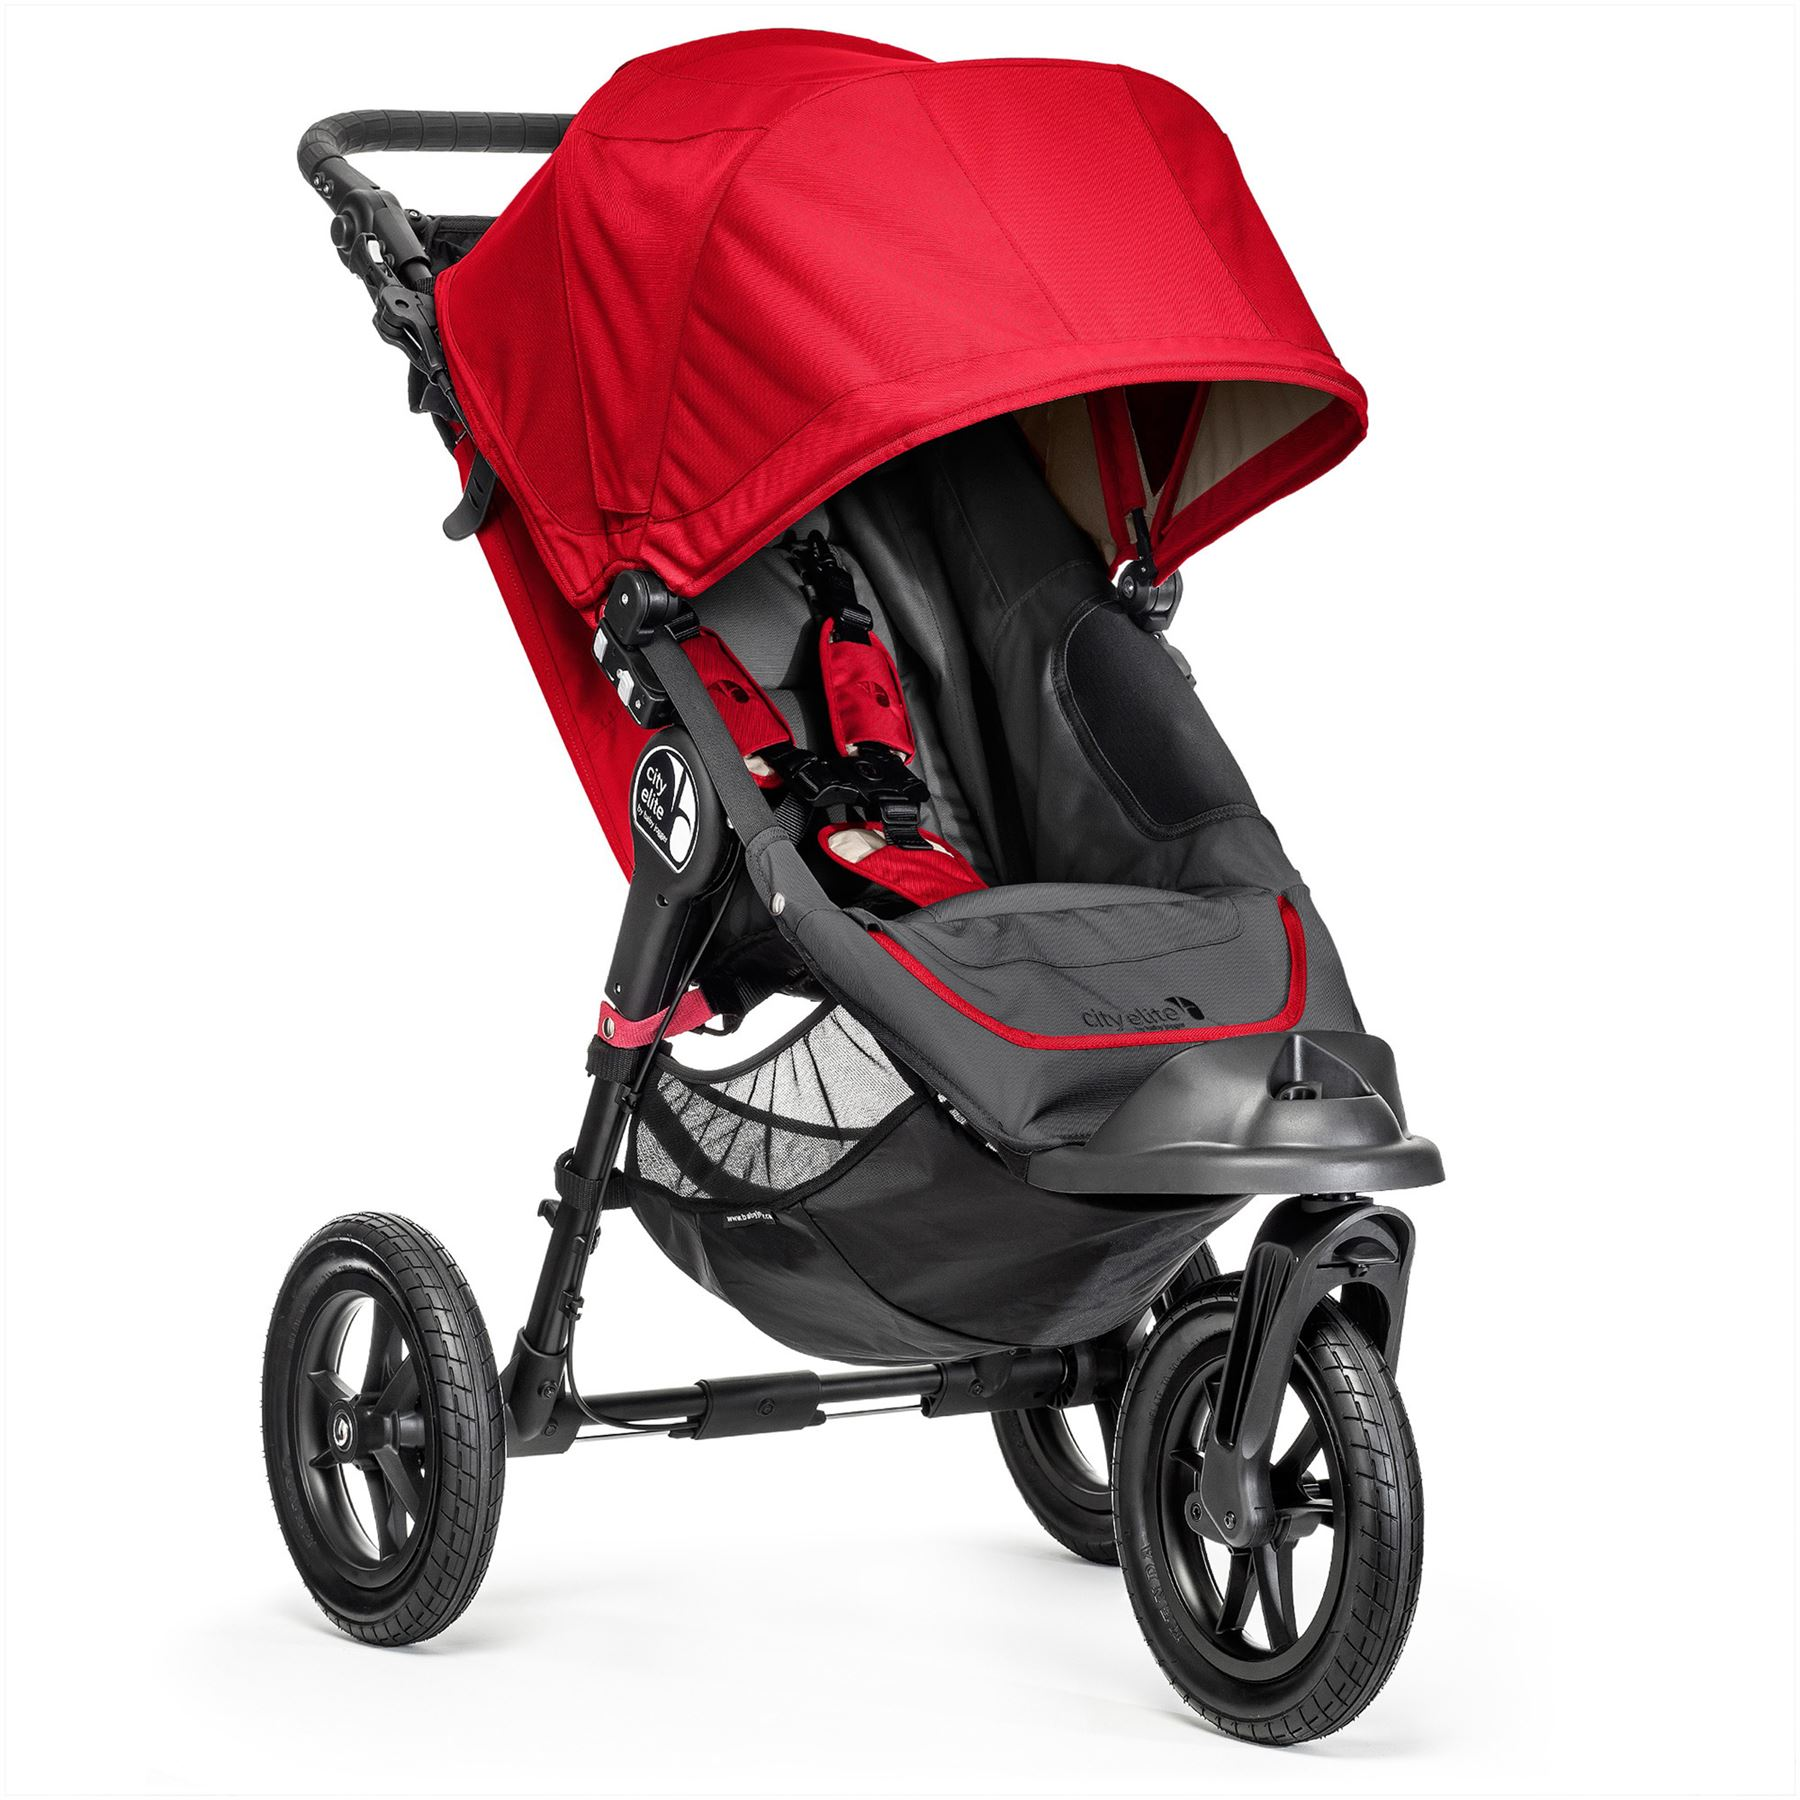 Out /'N/' About Travel Carry Bag Baby//Toddler//Child Pushchair Buggy Stroller BNIP